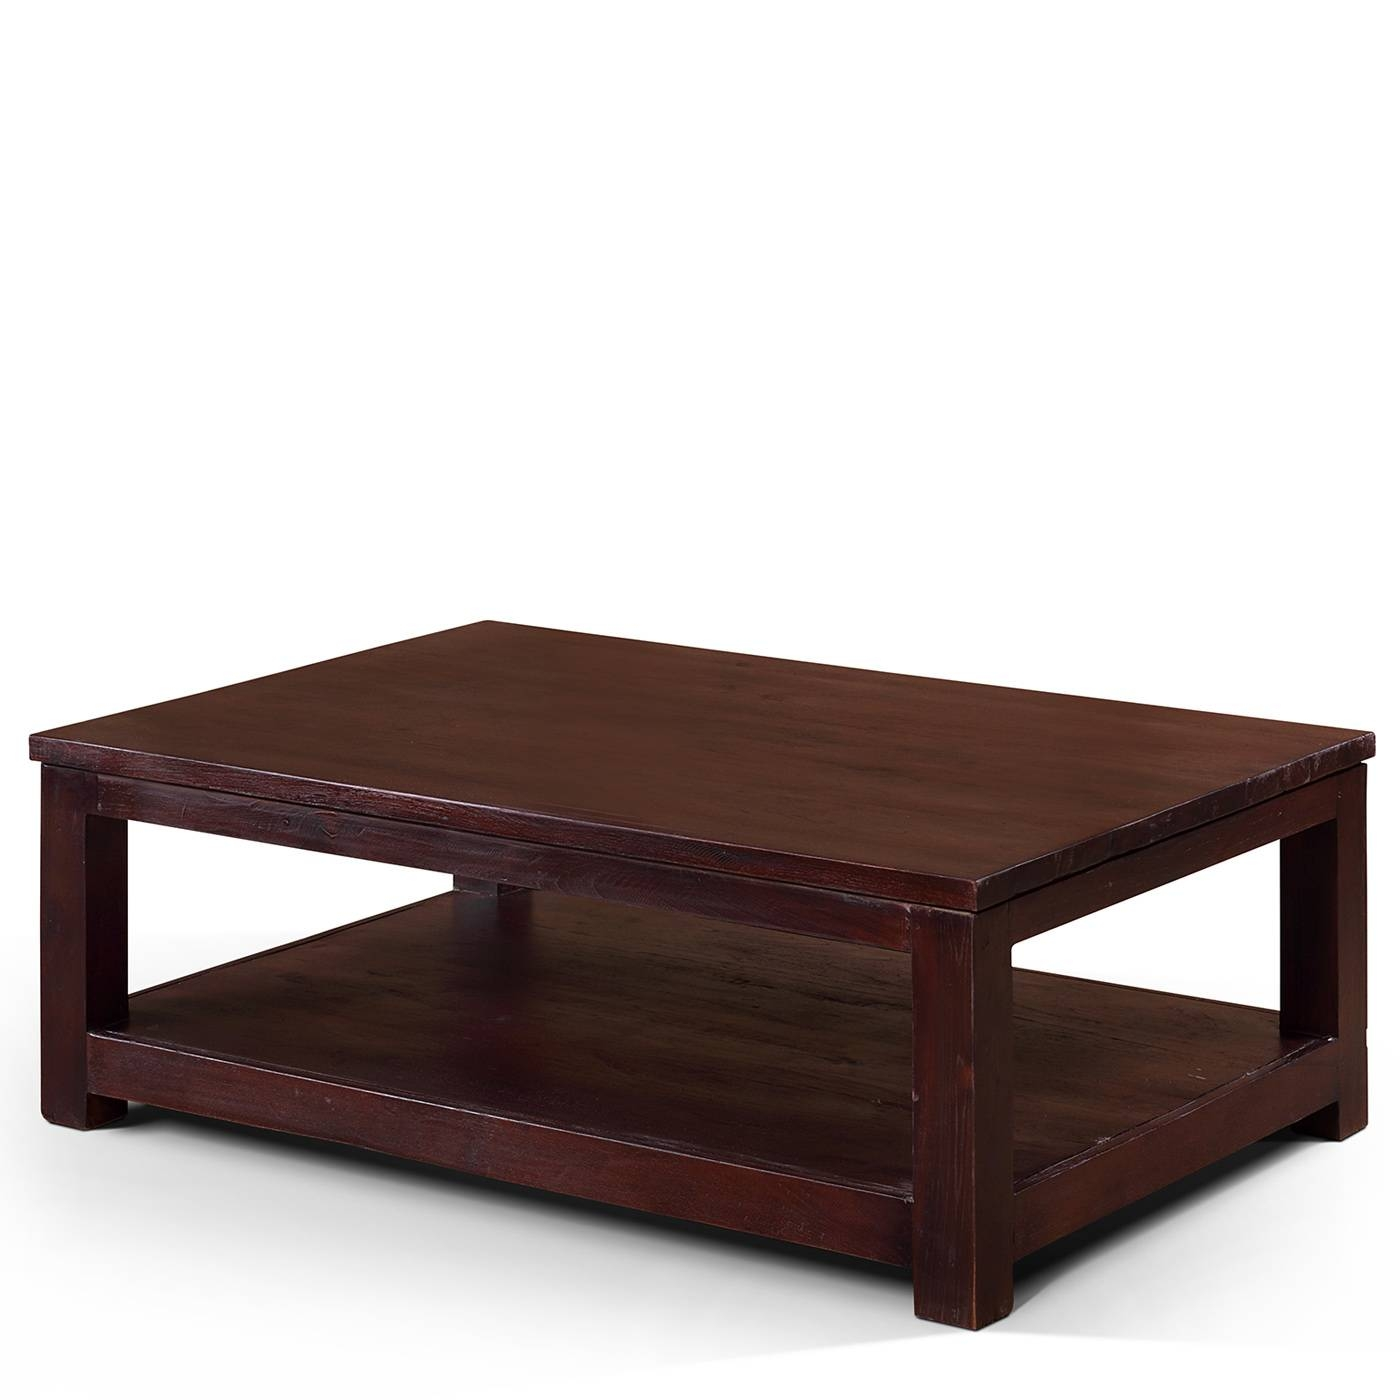 15 the best dark wood coffee tables Dark wood coffee tables